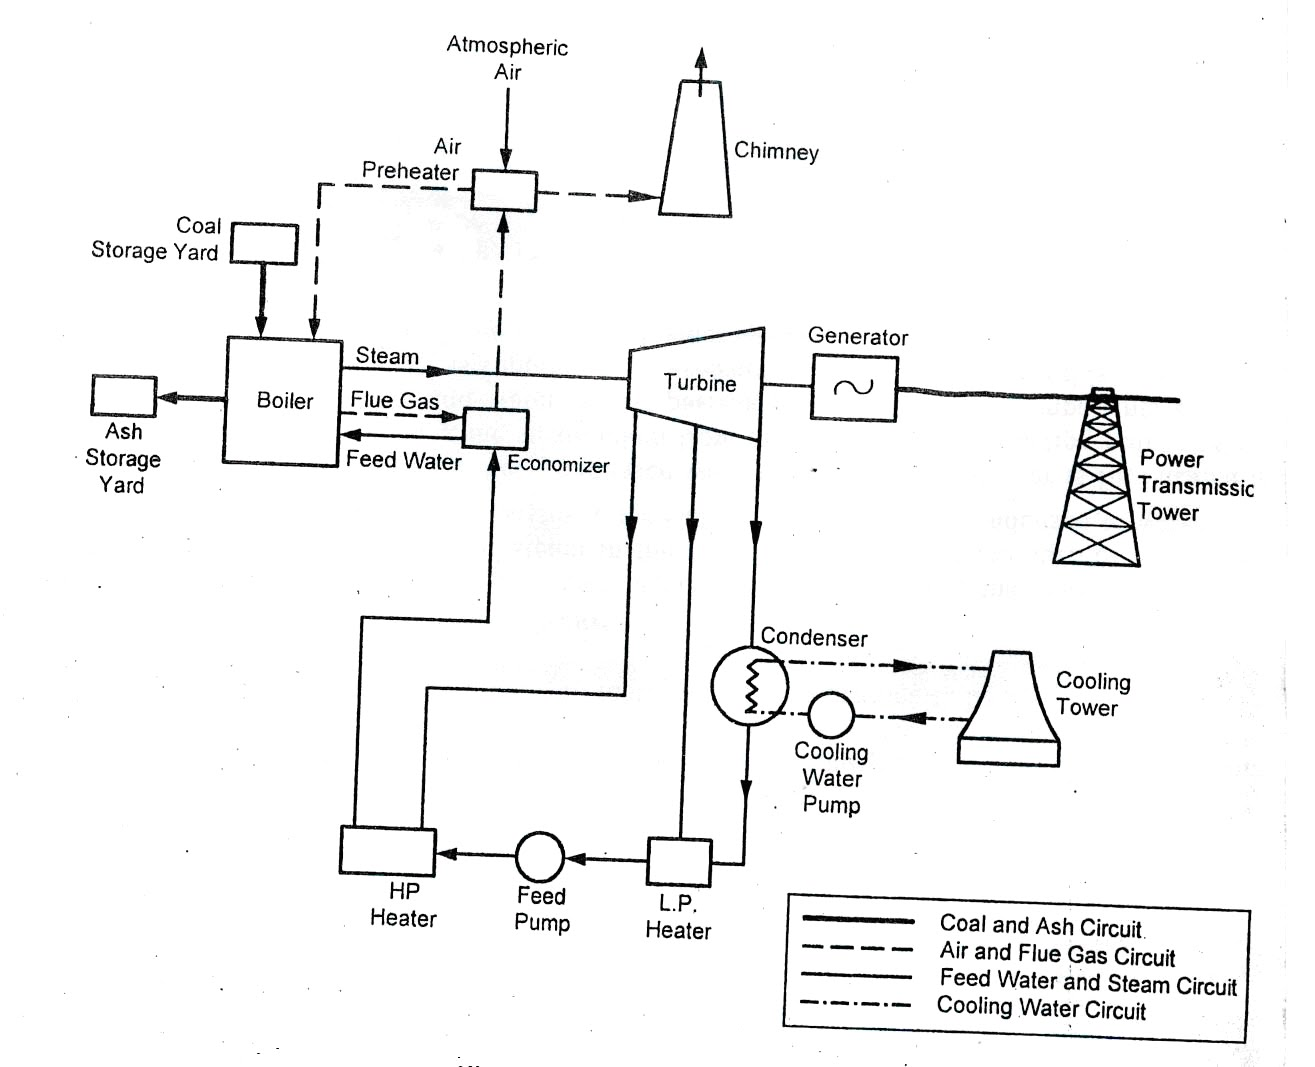 Solar Thermal Layout Of Power Plant Geothermal Diagram Pictures